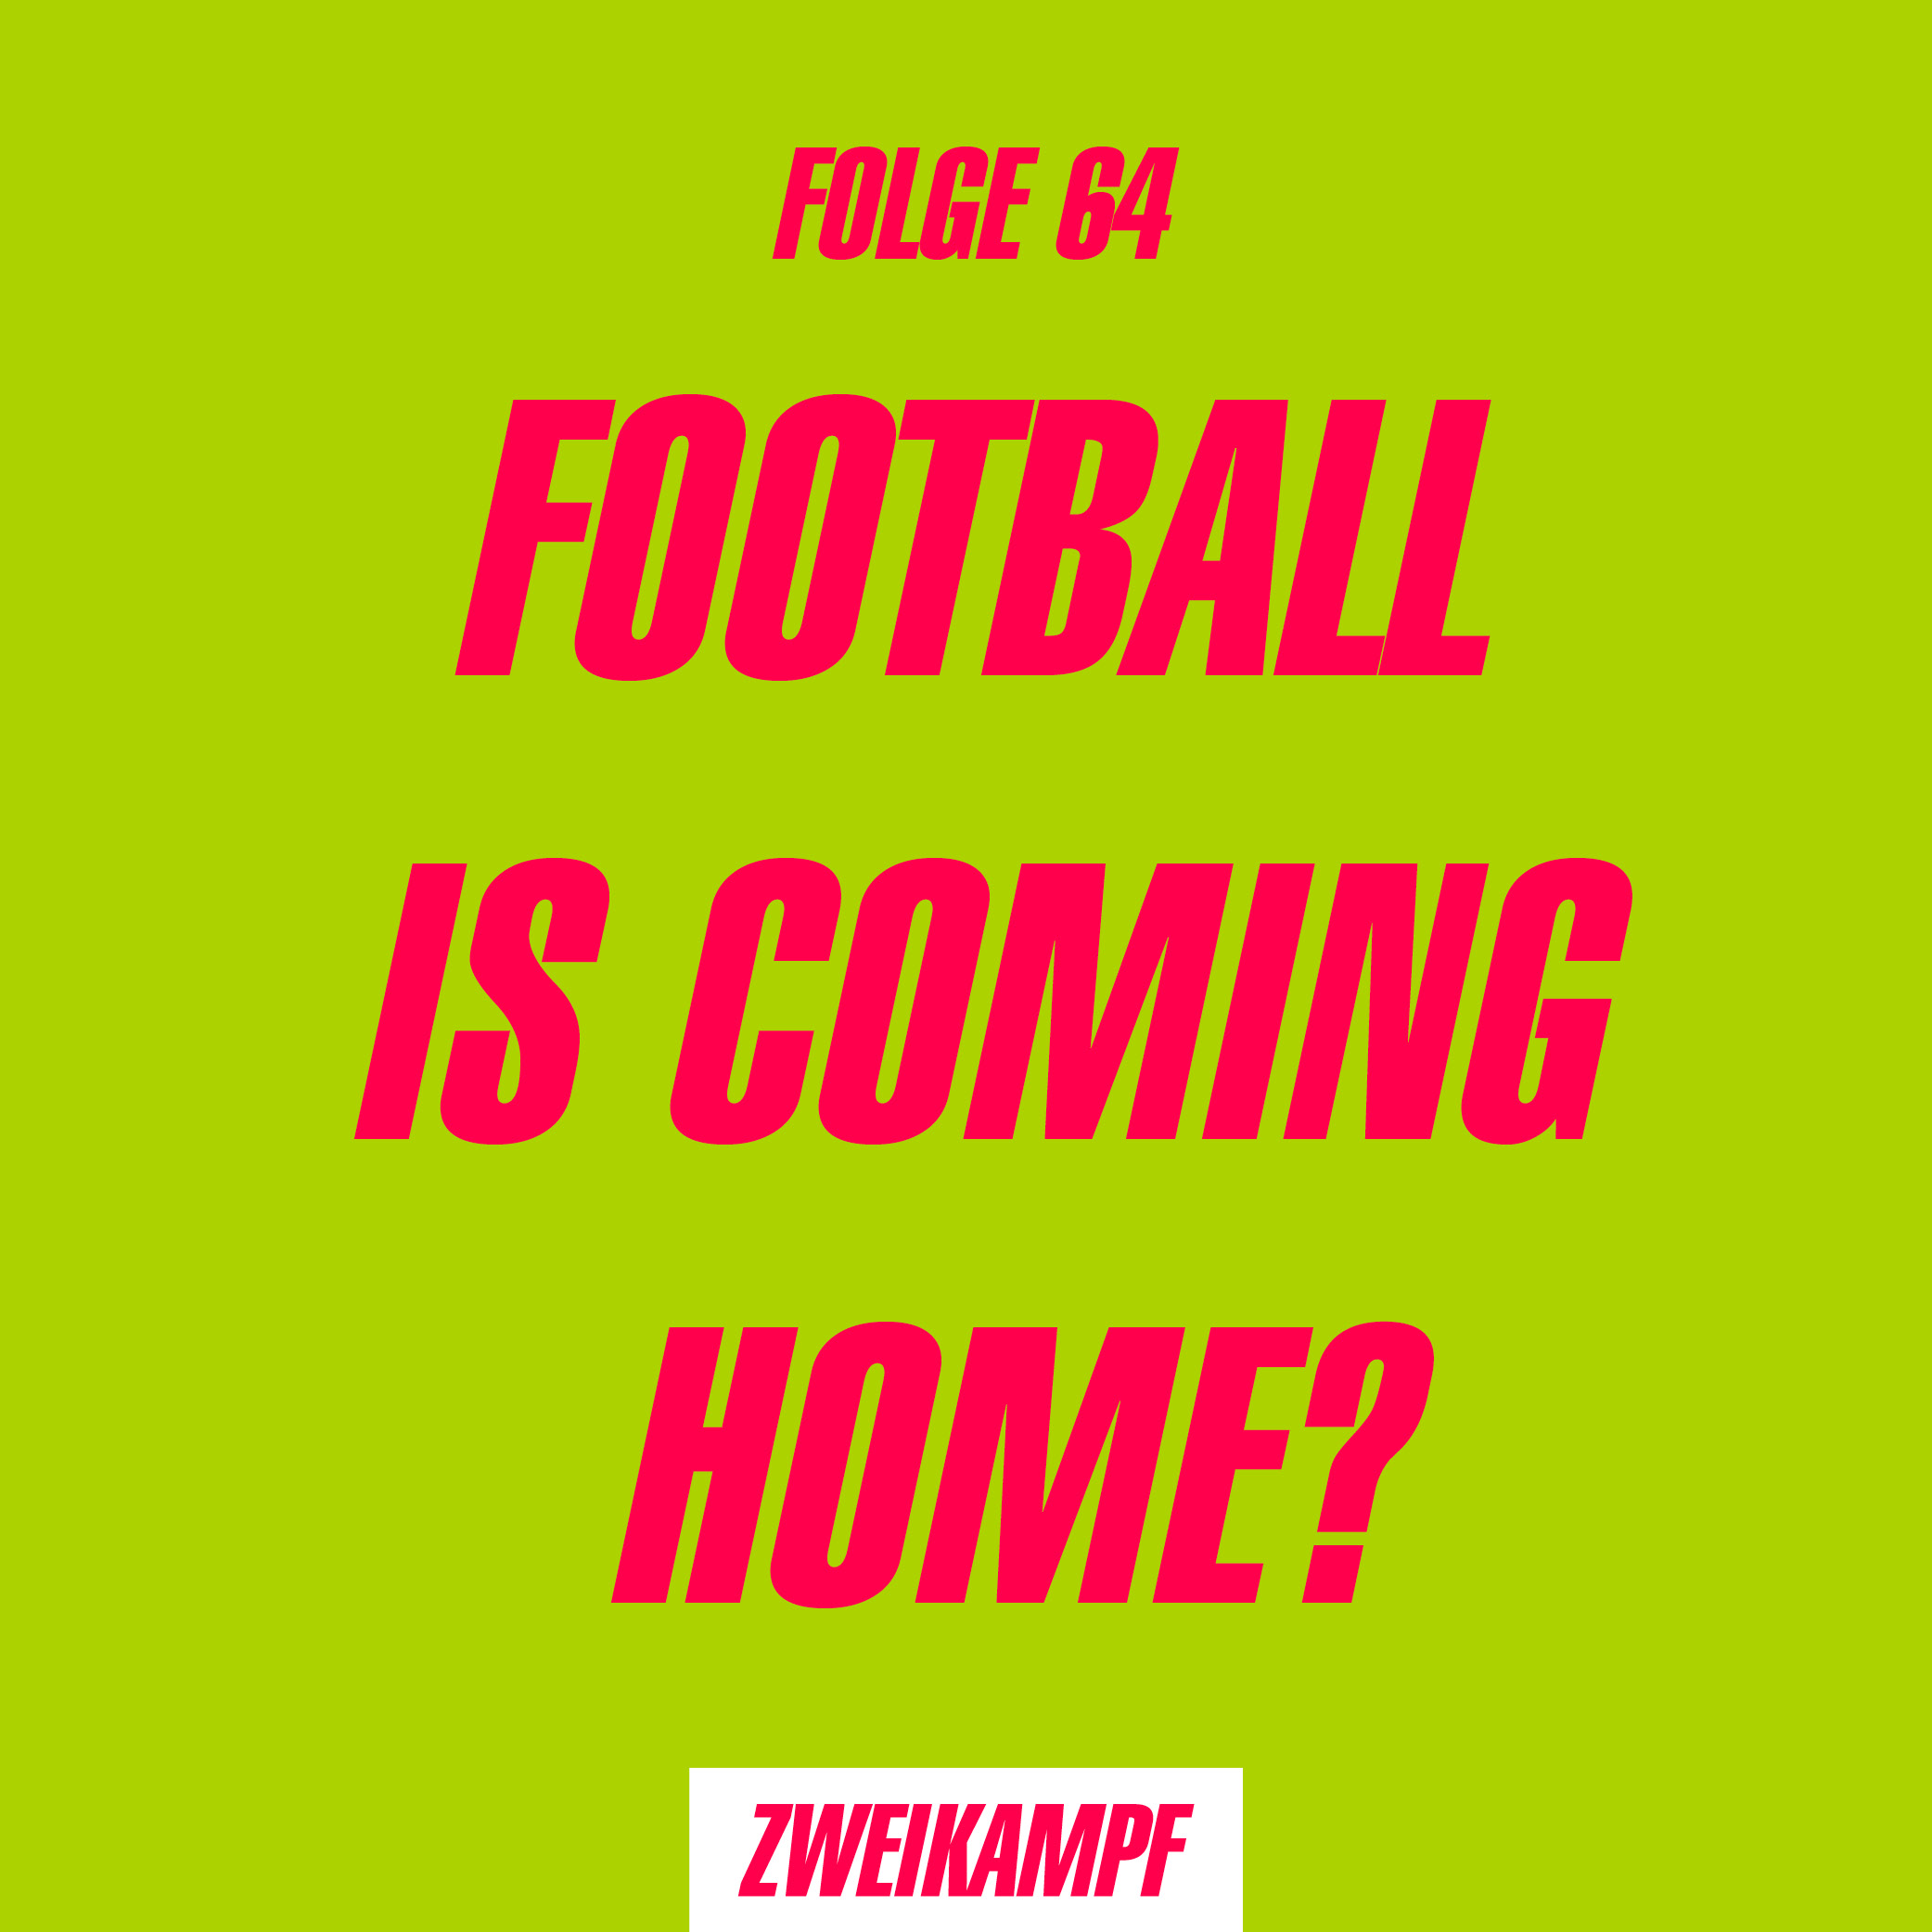 Folge 64: Football is coming home?